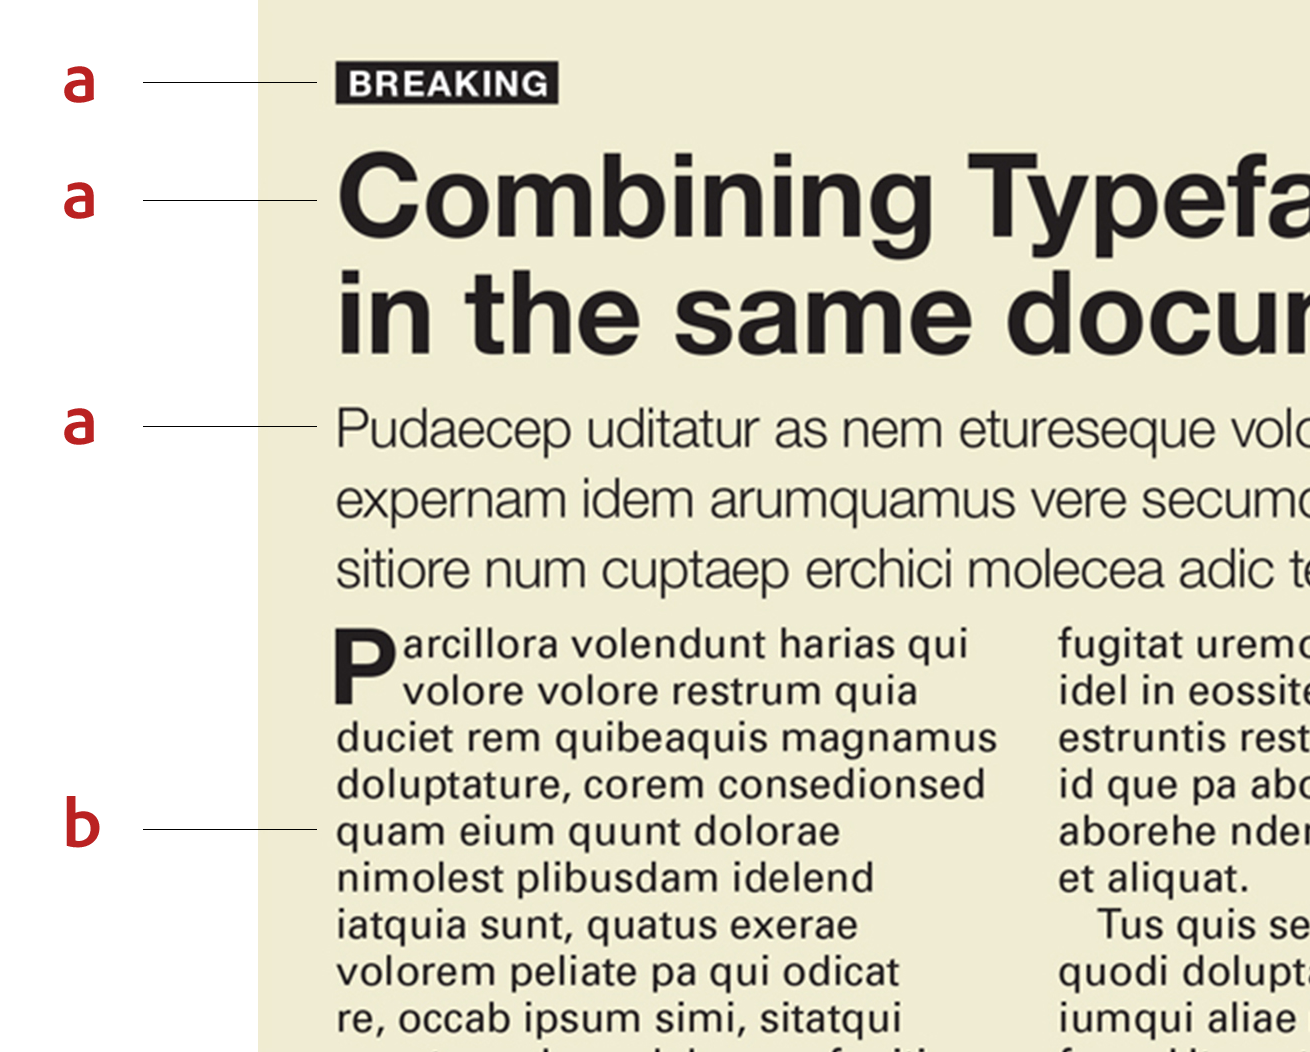 An example of the typefaces Helvetica and Univers used in the same layout